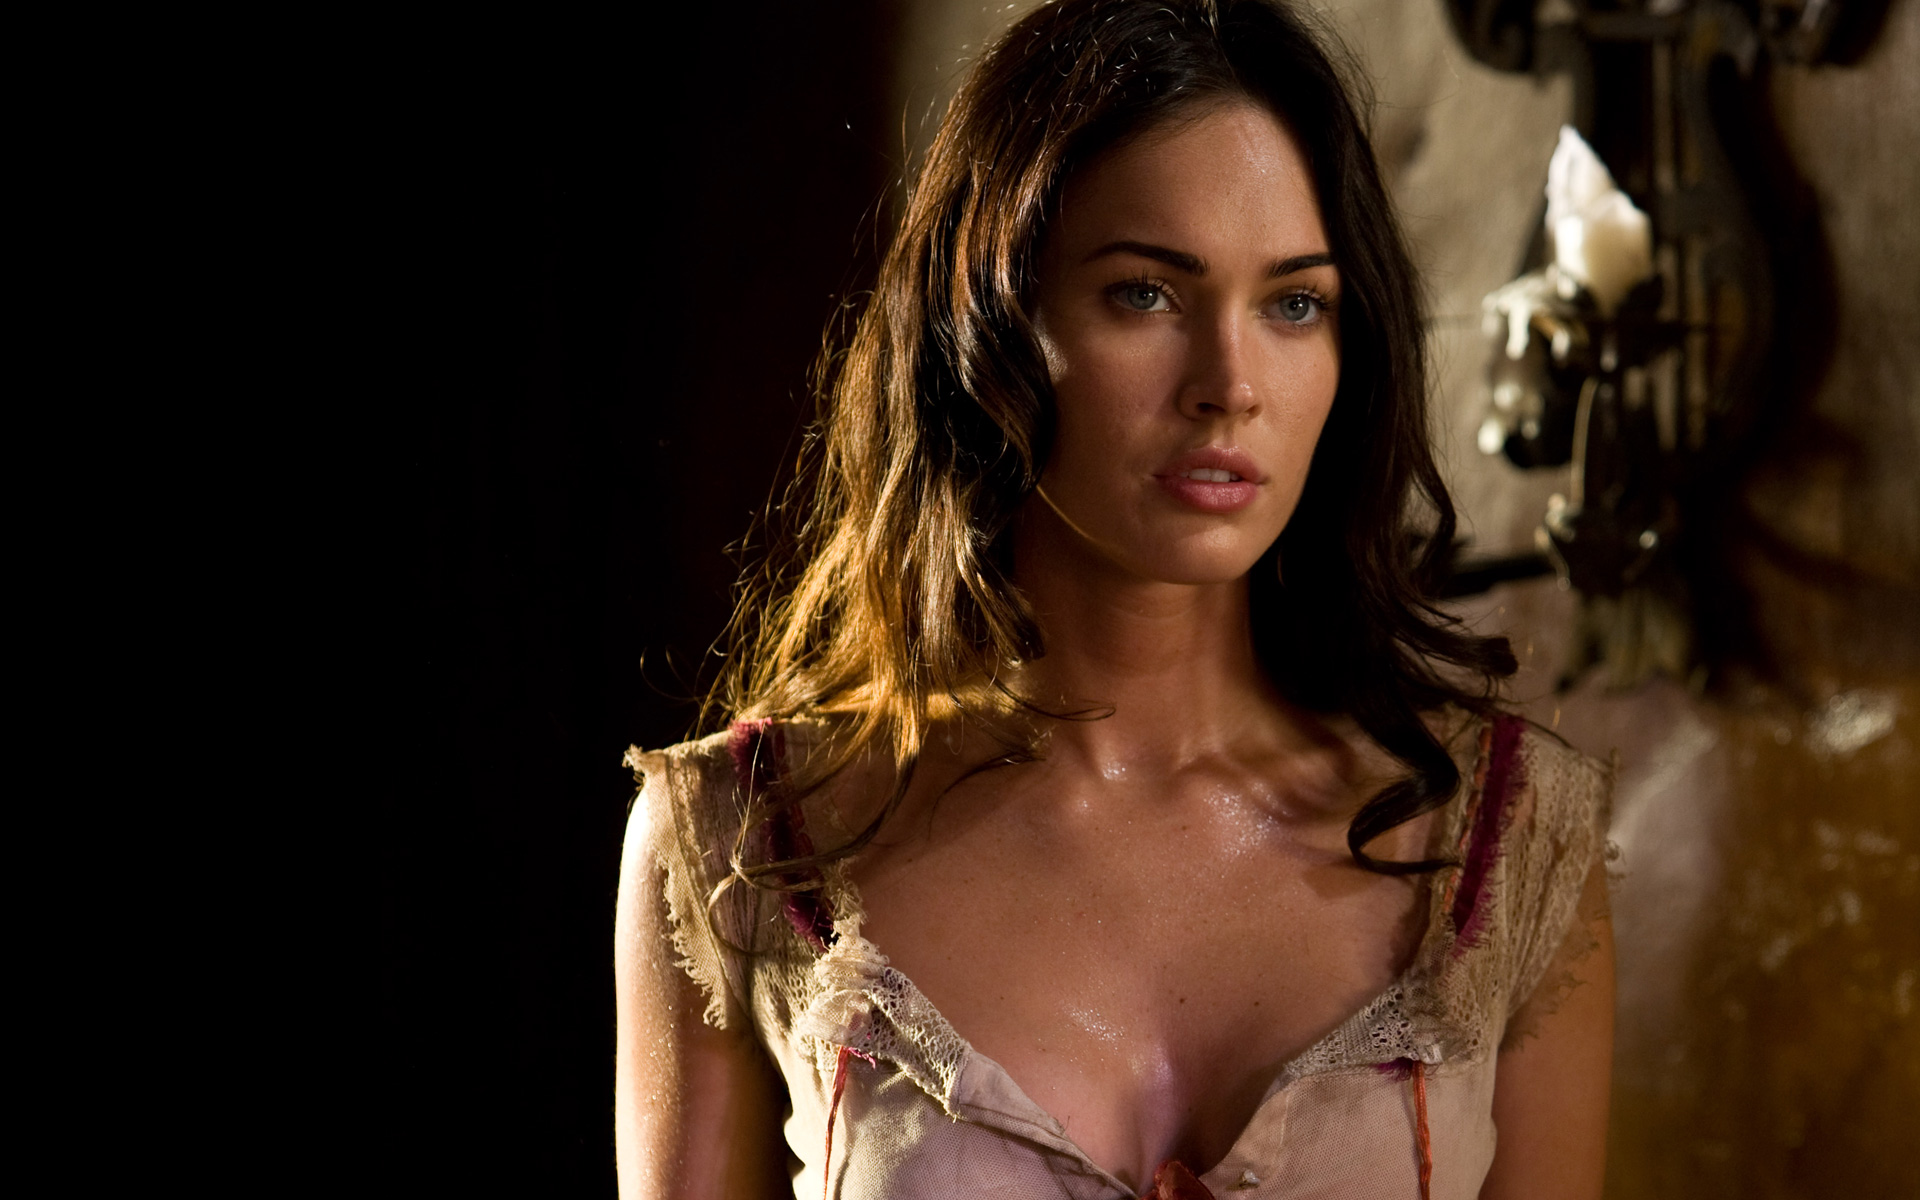 Megan Fox in Jonah Hex 655.04 Kb